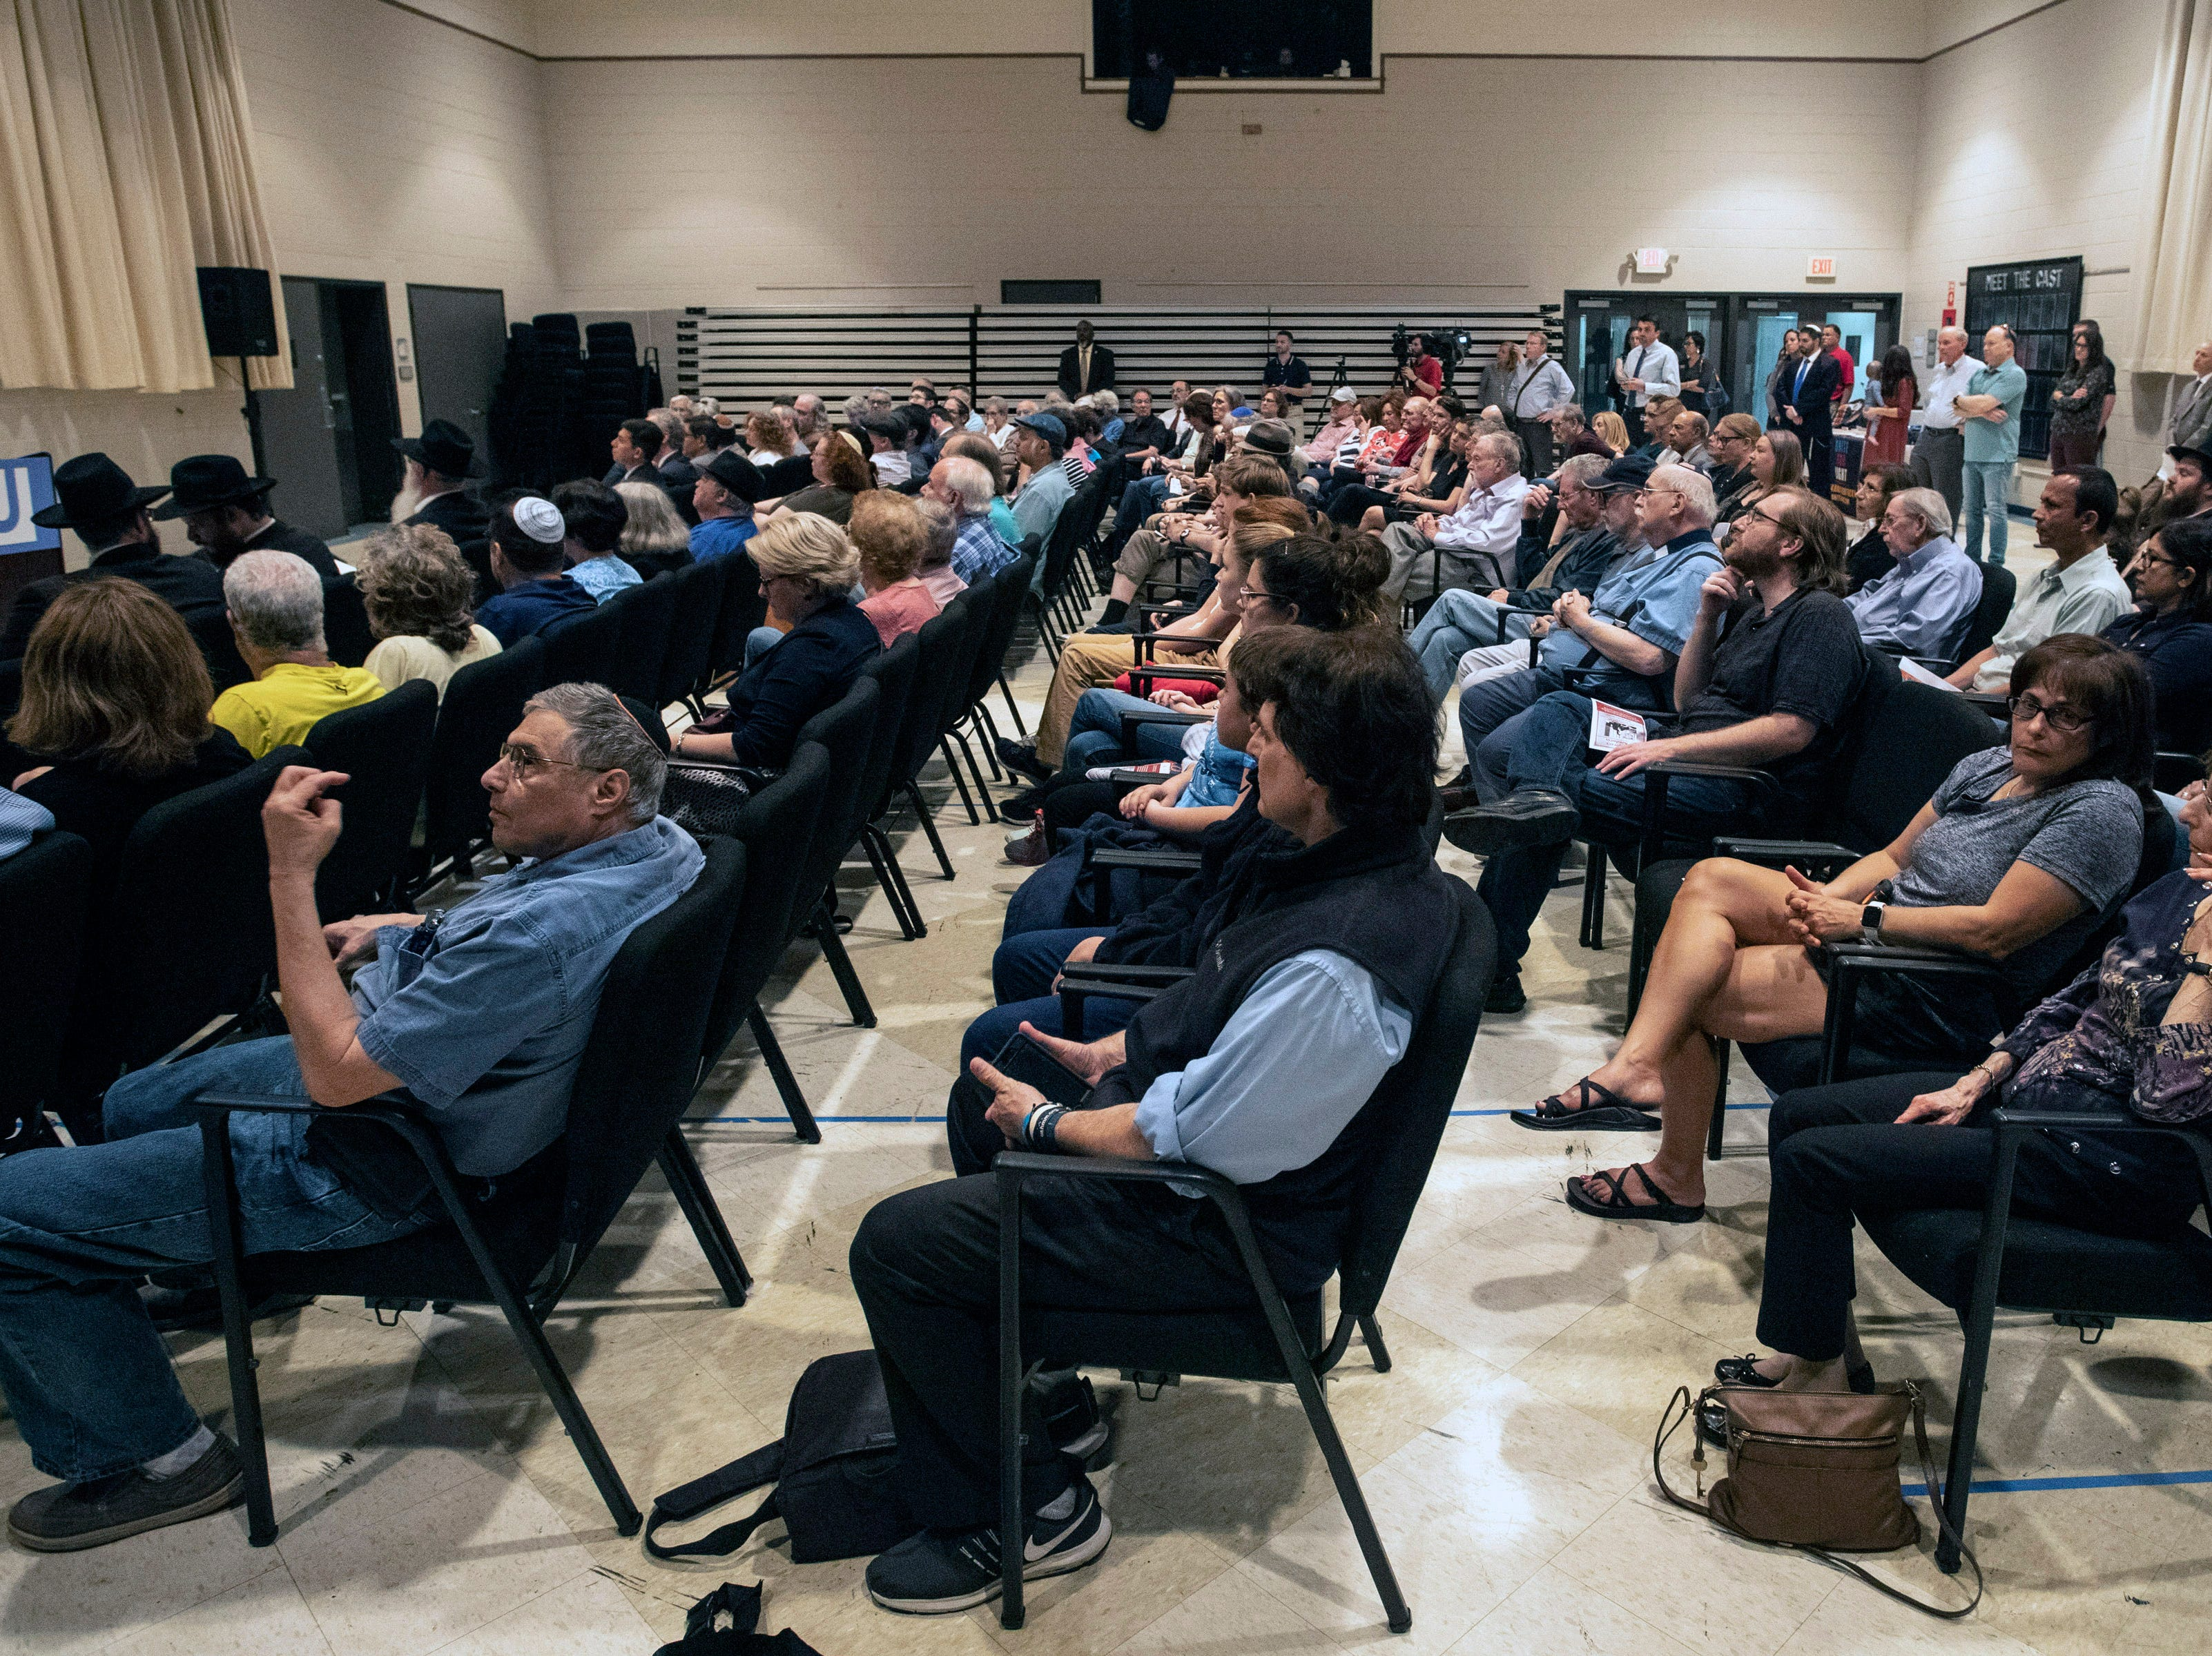 The Jewish Community Center hosted a Unite For Light service on Tuesday night to pray for the victims of the recent Chabad of Poway Synagogue shooting during Passover weekend. April 30, 2019